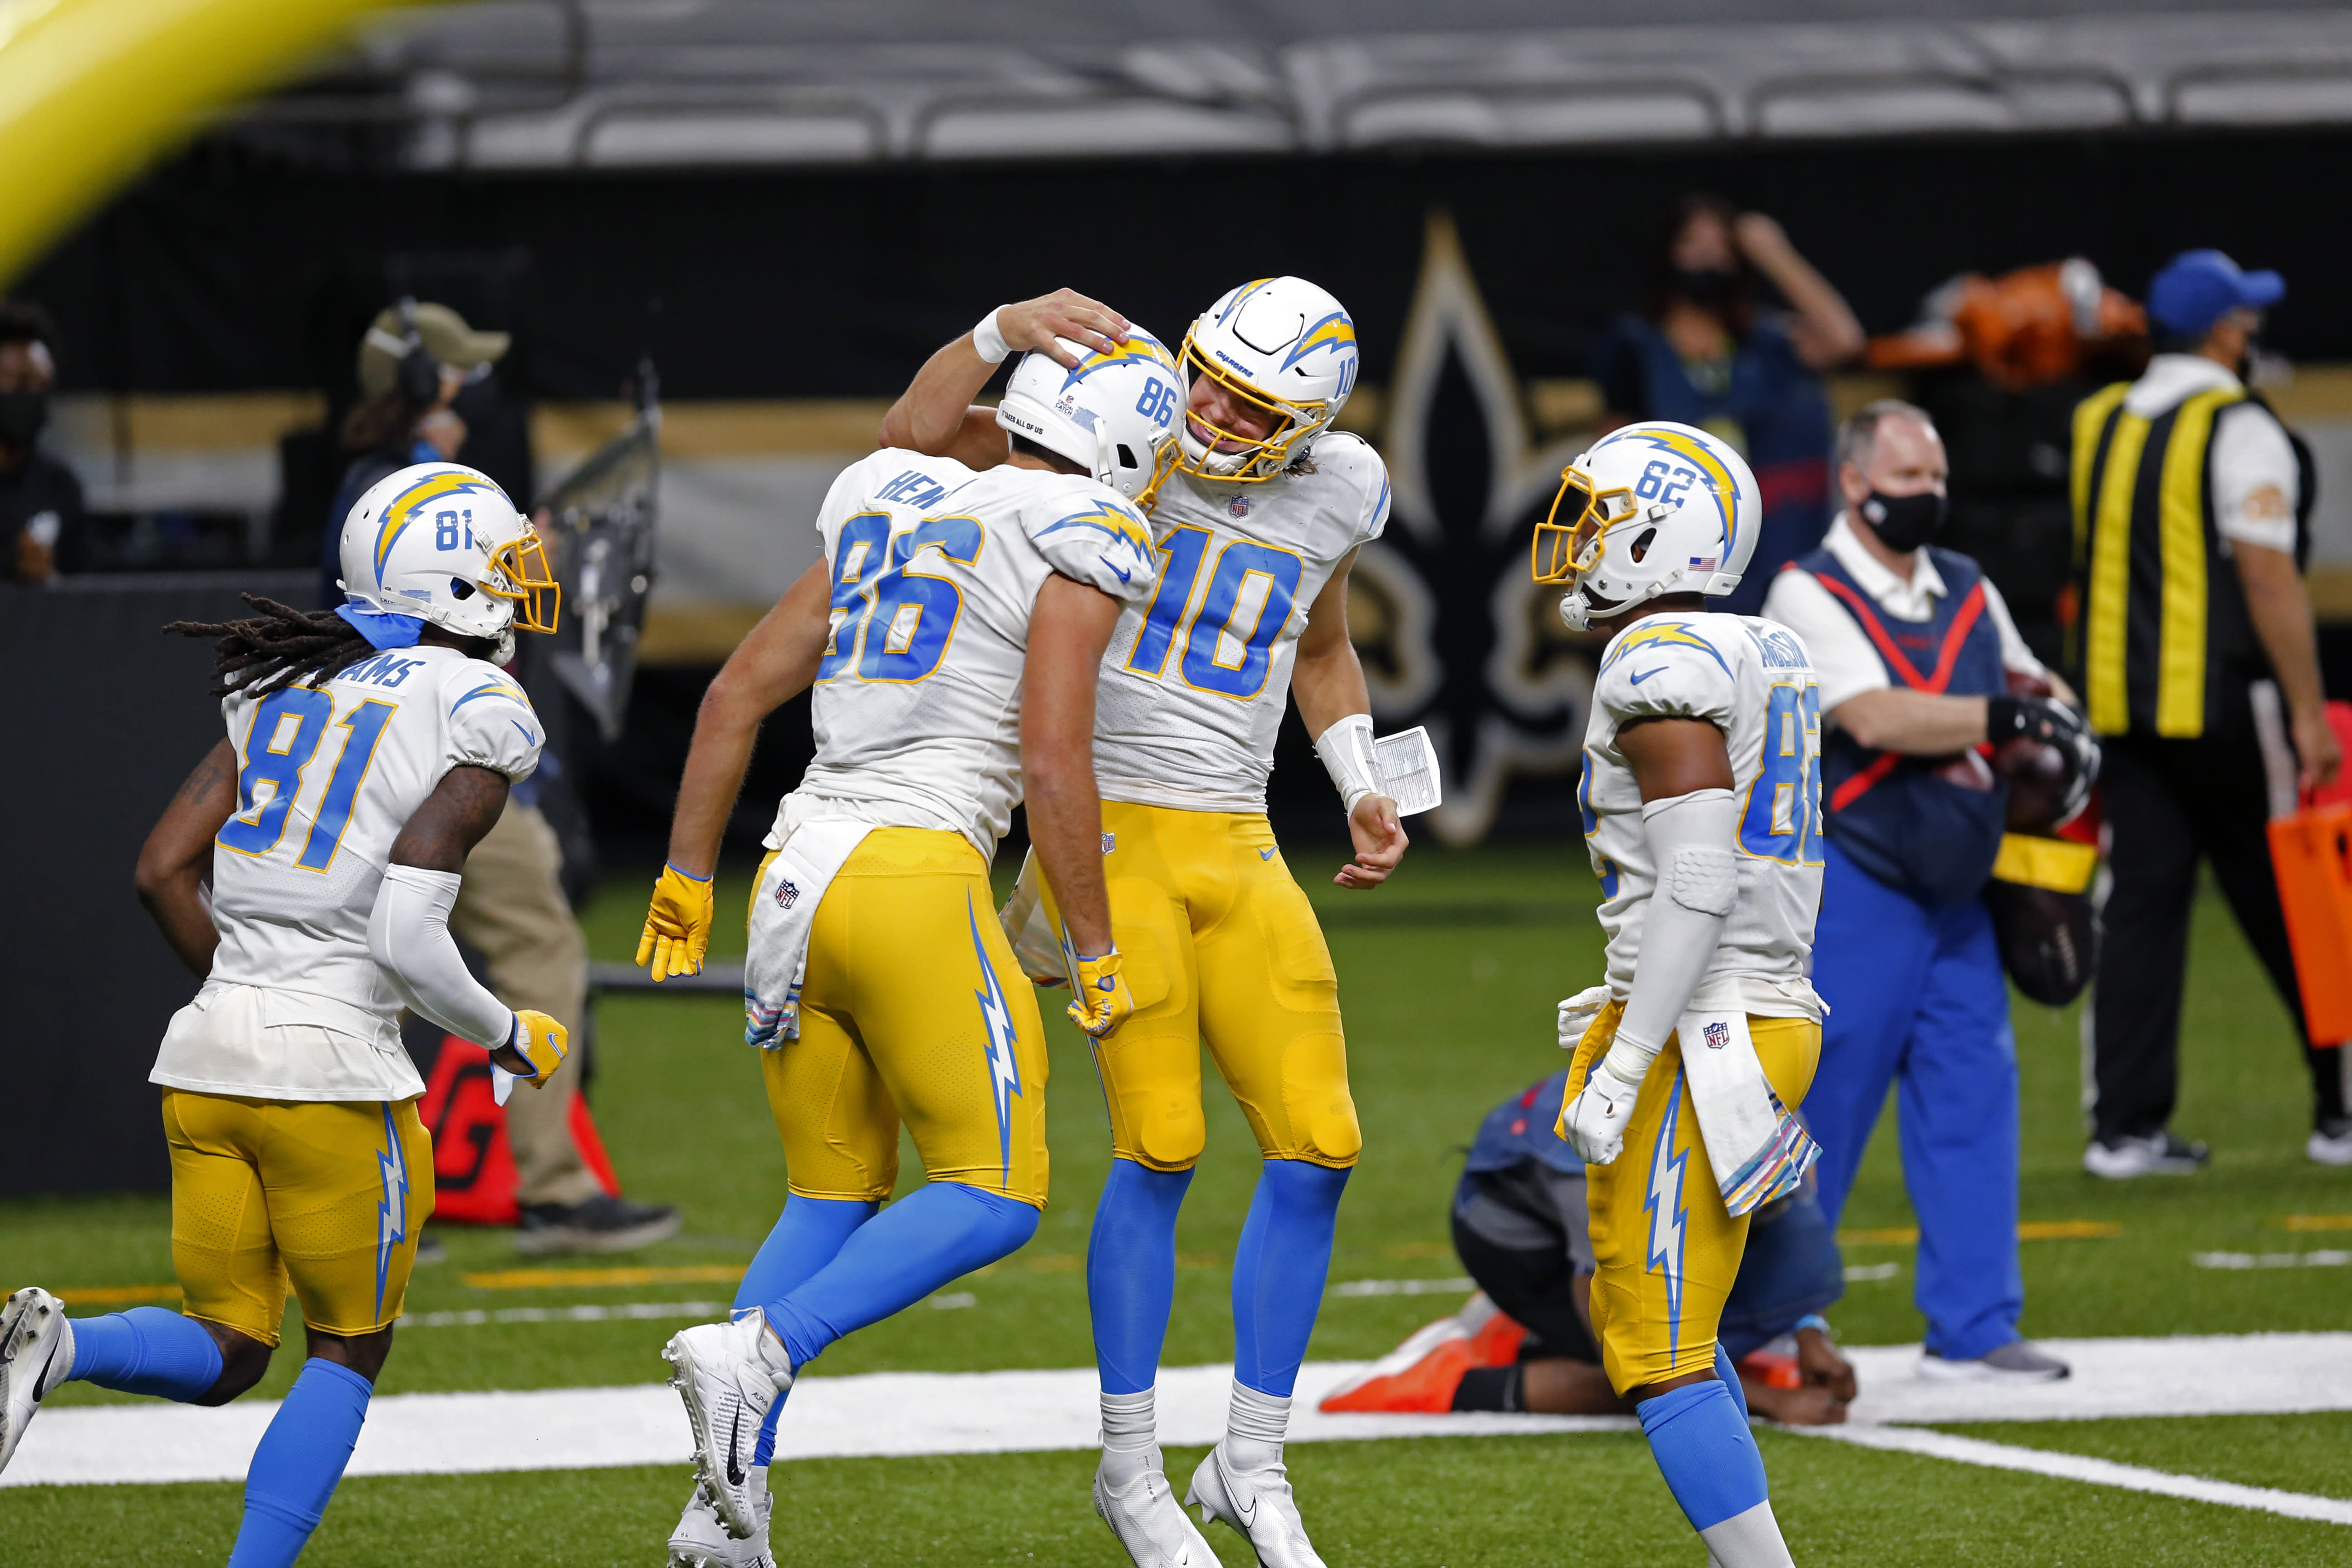 Los Angeles Chargers quarterback Justin Herbert (10) and tight end Hunter Henry (86) celebrate their touchdown pass in the first half of an NFL football game against the New Orleans Saints in New Orleans, Monday, Oct. 12, 2020. (AP Photo/Brett Duke)